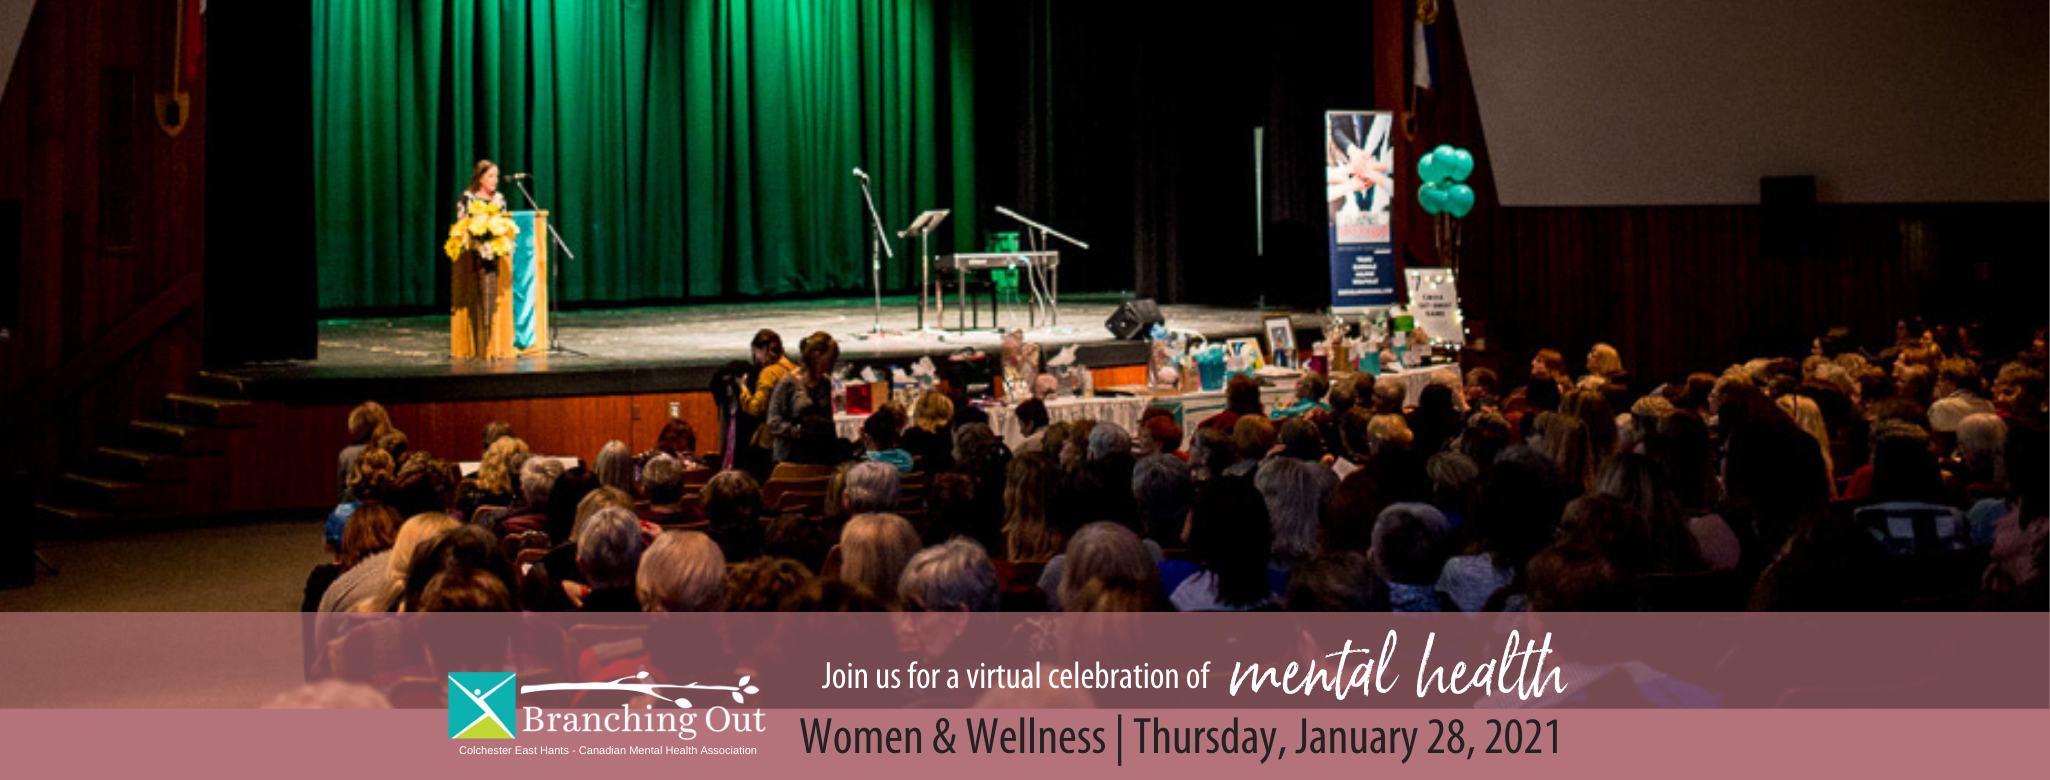 12th Annual Women & Wellness Event Moving Online  |  January 28, 2021